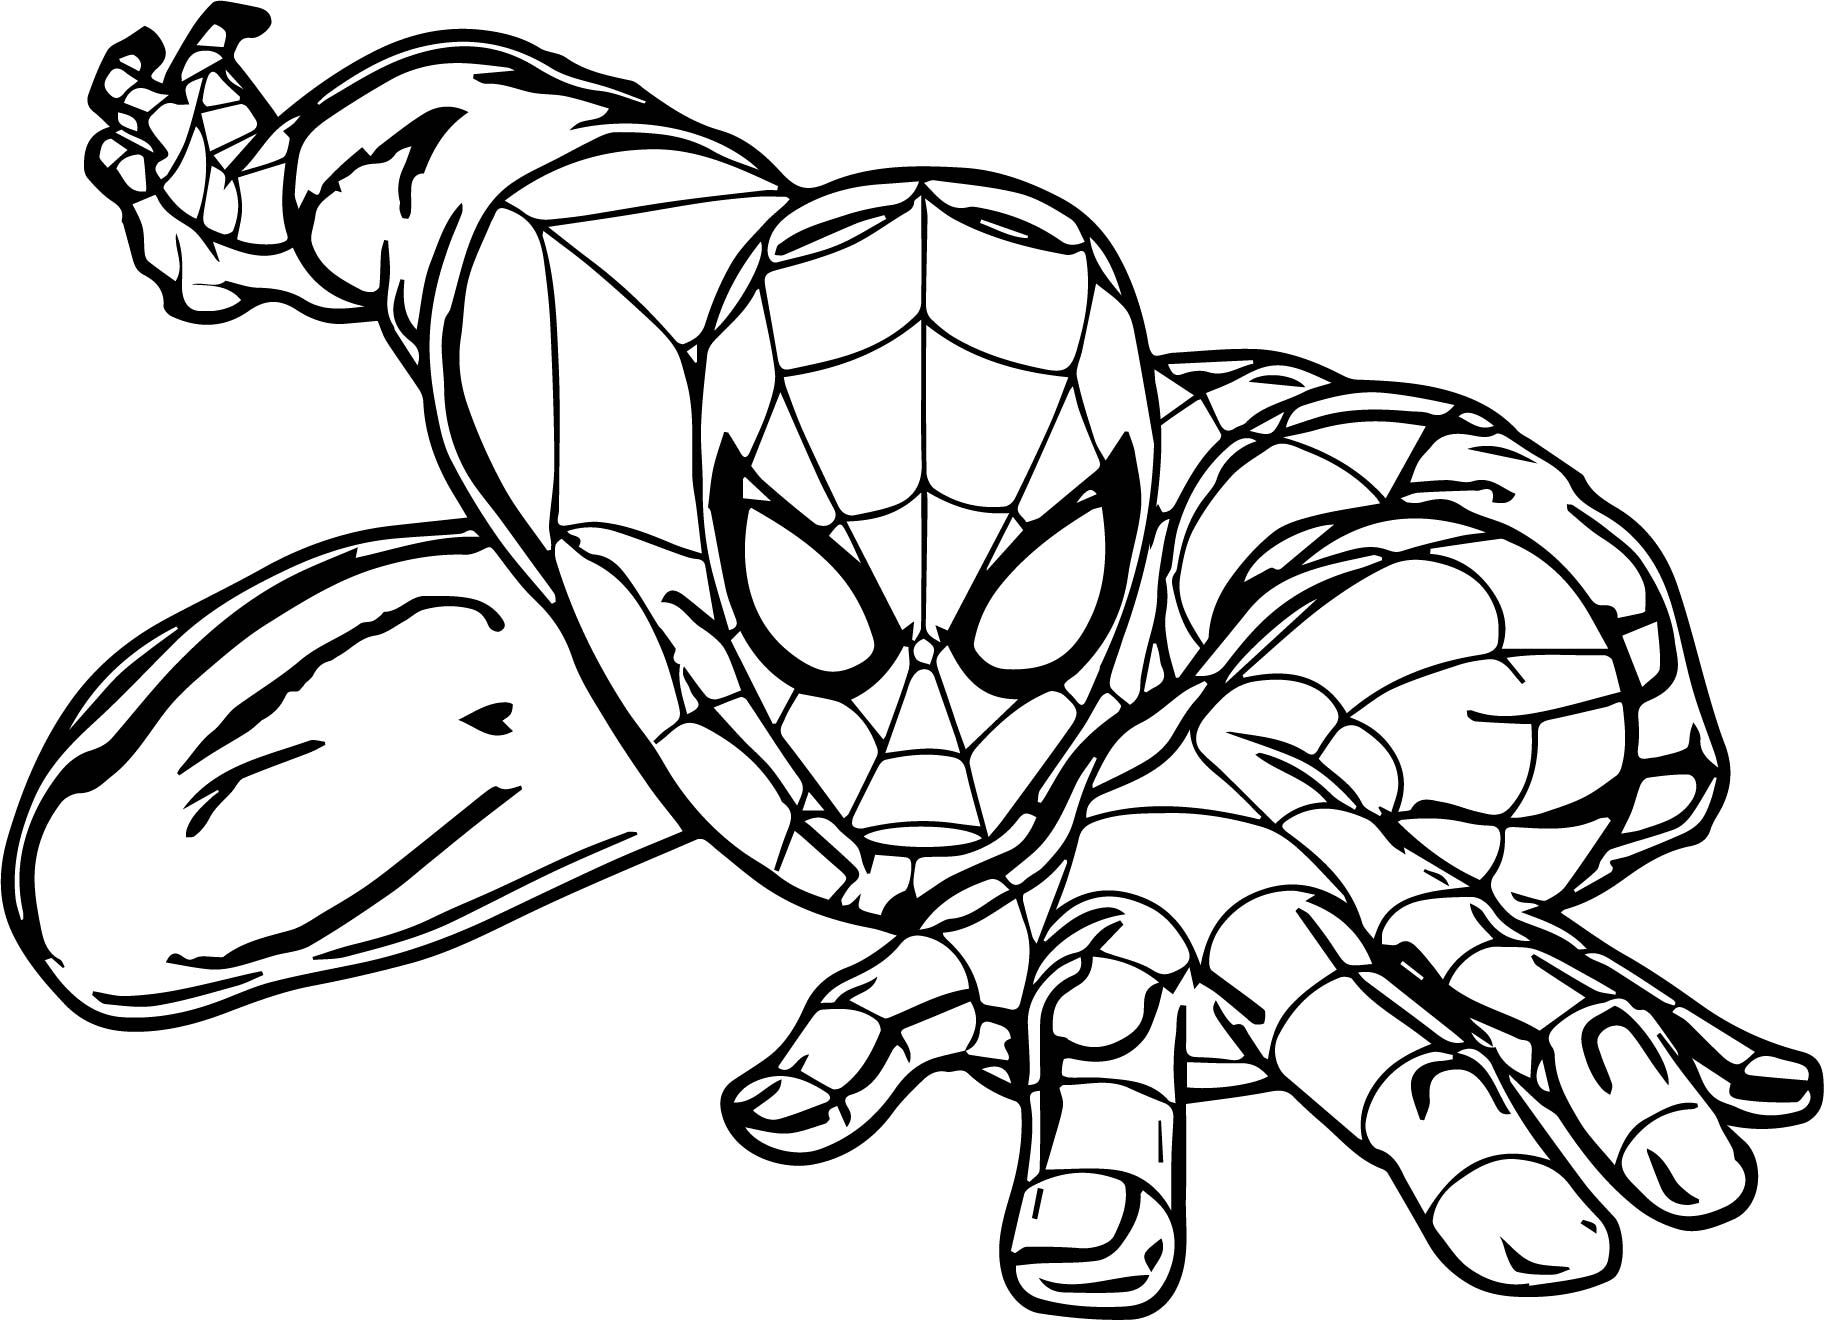 - Cool Cartoon Spider Spider Man Coloring Page Spiderman Coloring